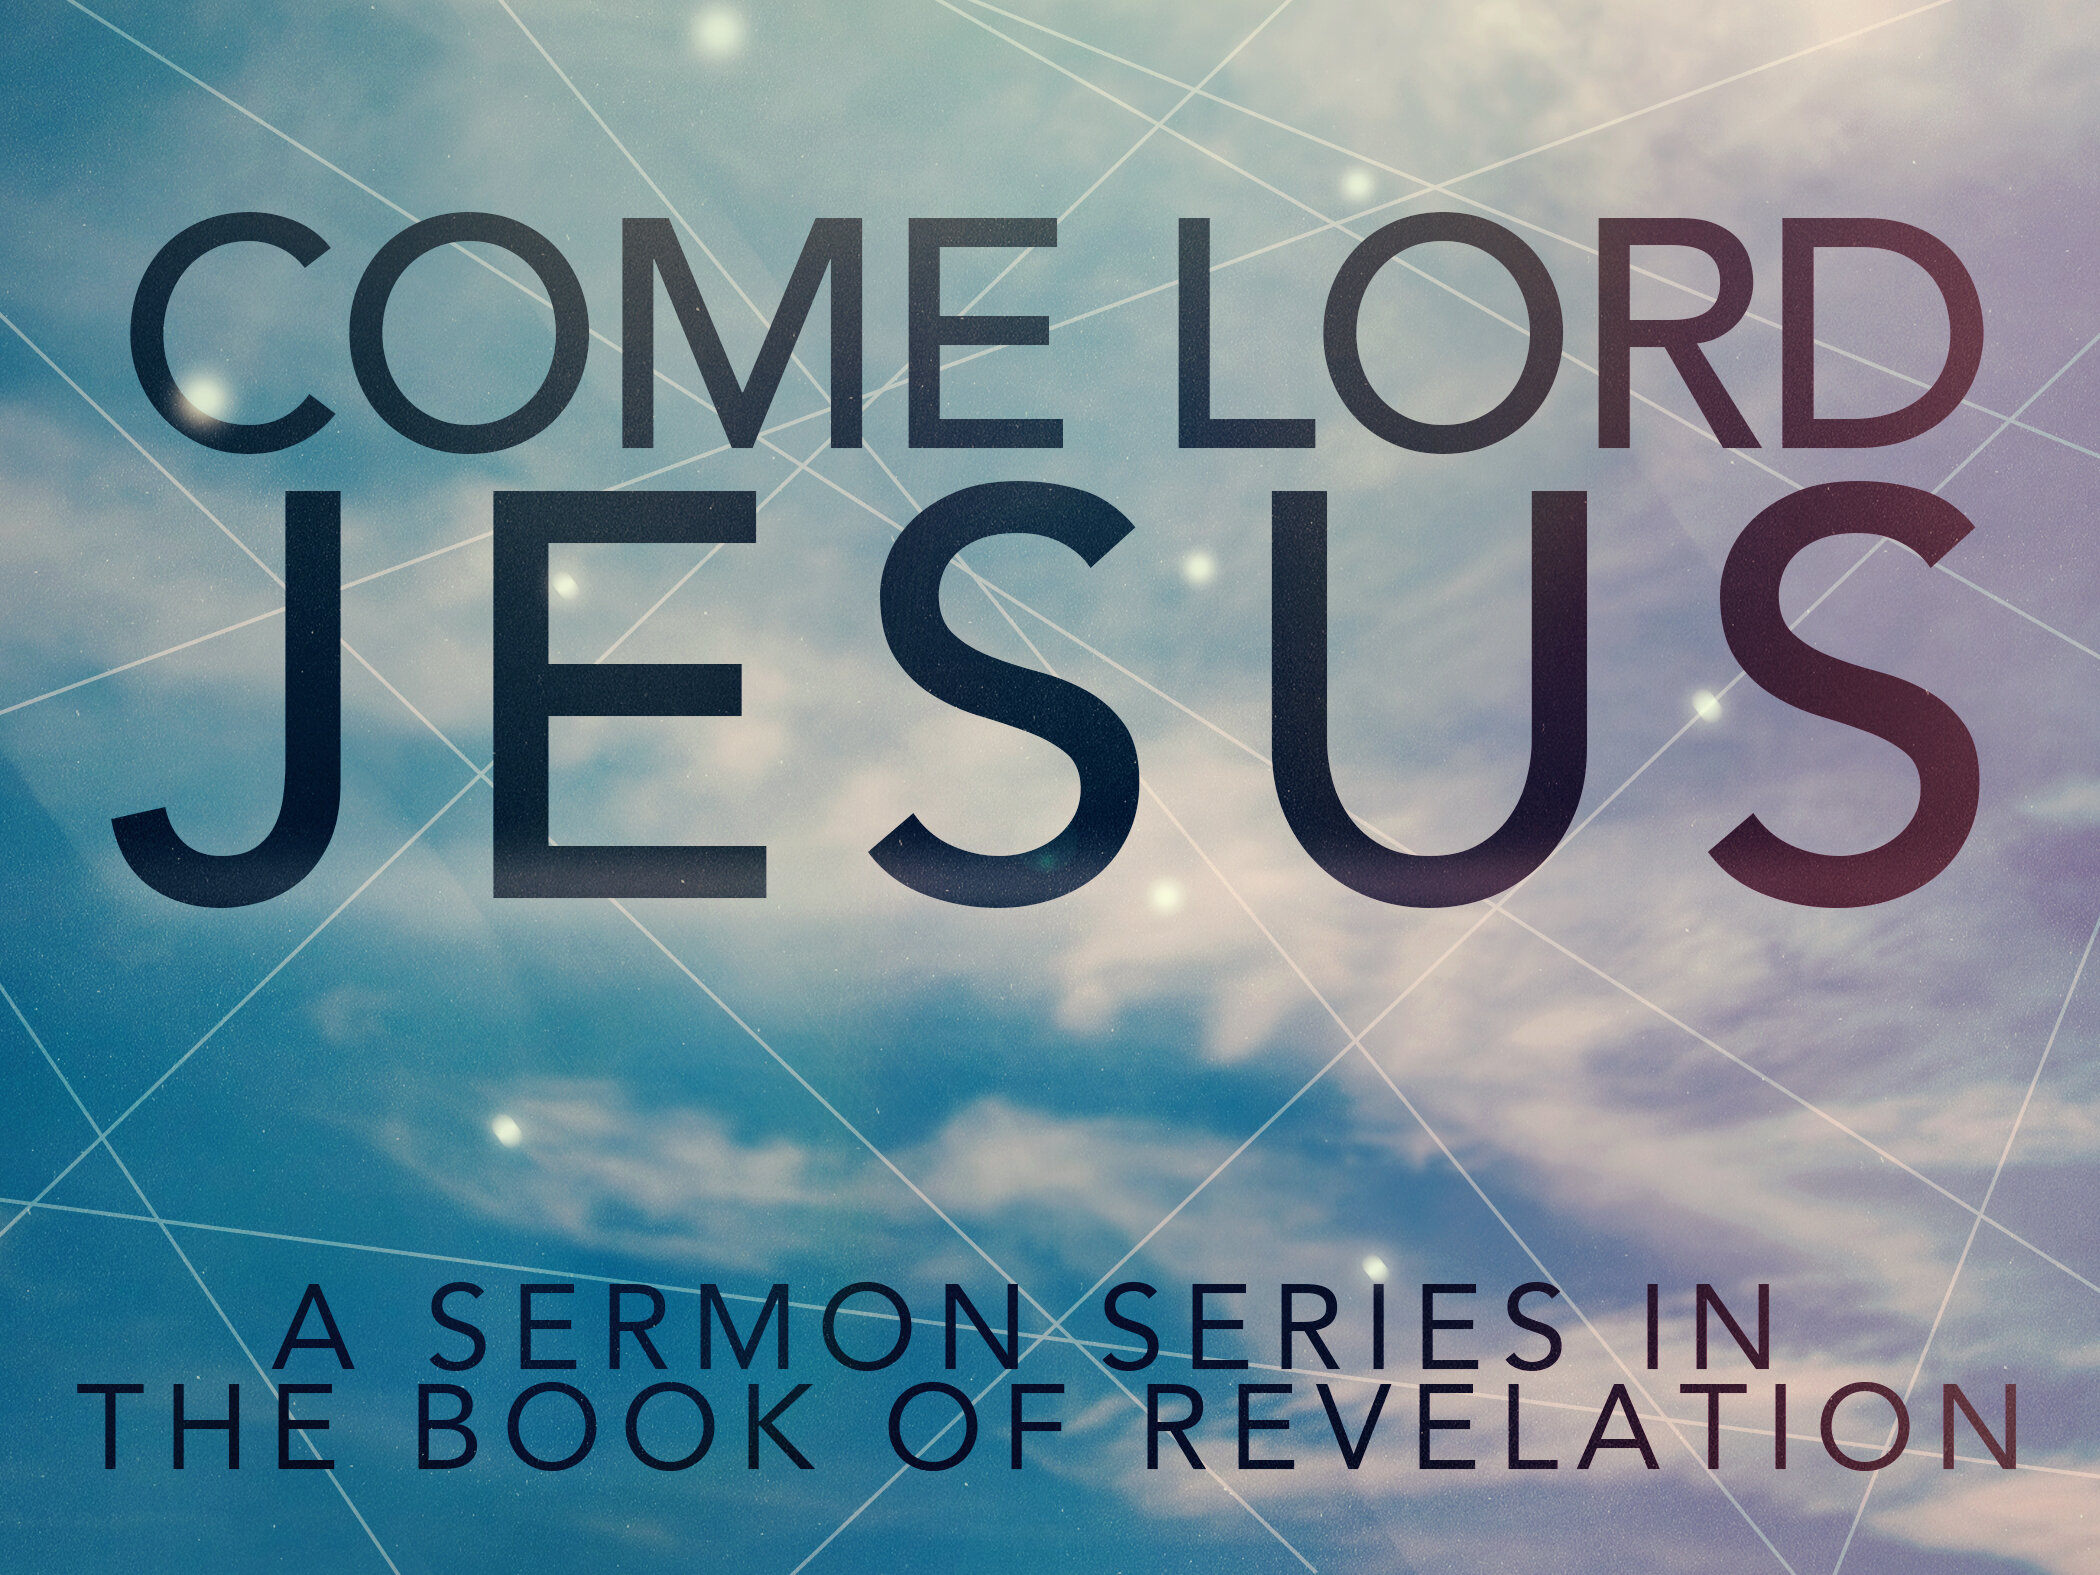 Come Lord Jesus - A series in the book of Revelation.